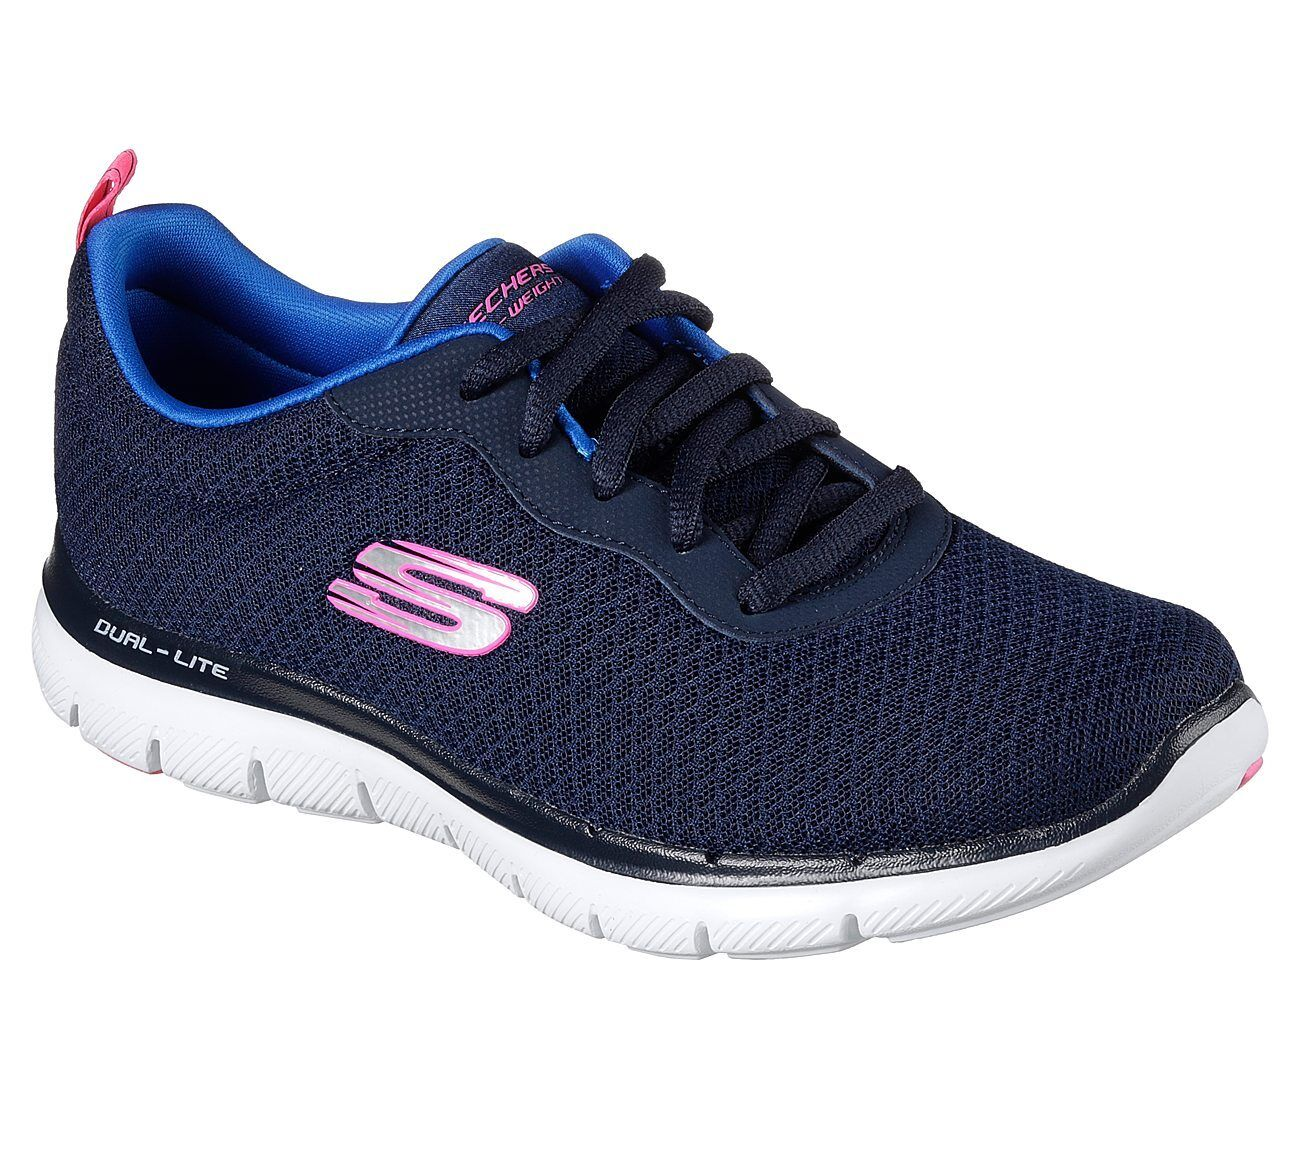 Mujer Appeal Skechers Flex Appeal Mujer 2.0 - Newsmaker 12775 NVY 44e244